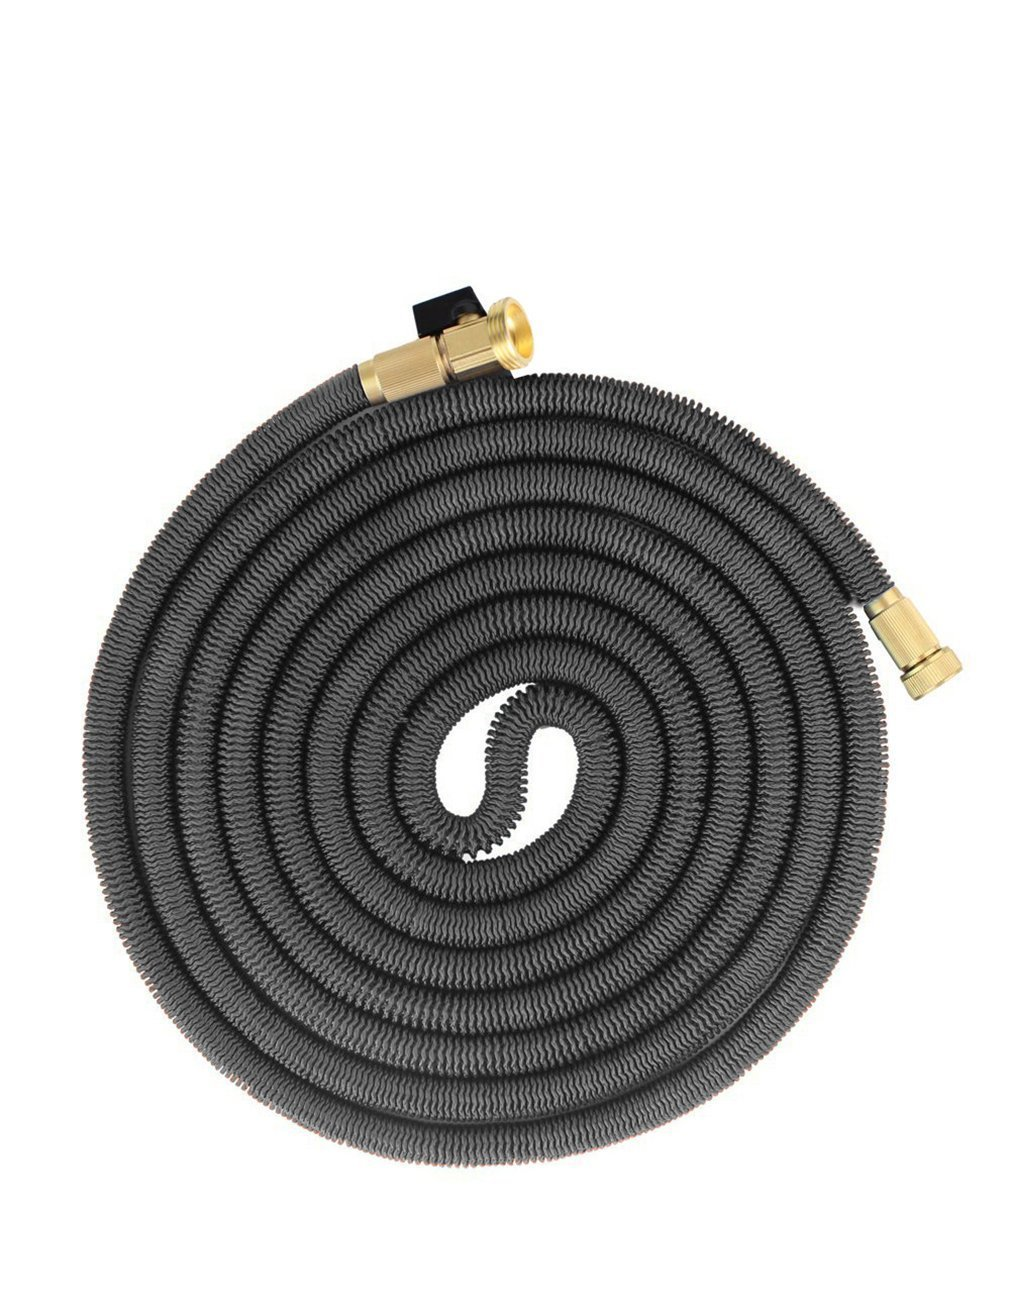 iZEEKER New Design in 2016,Three Times Expandable 50 Feet Magic Hose,Washing Car Hose ,Strongest Expandable Garden Hose ,Solid Brass Ends, Double Latex Core, Extra Strength Fabric (Black)